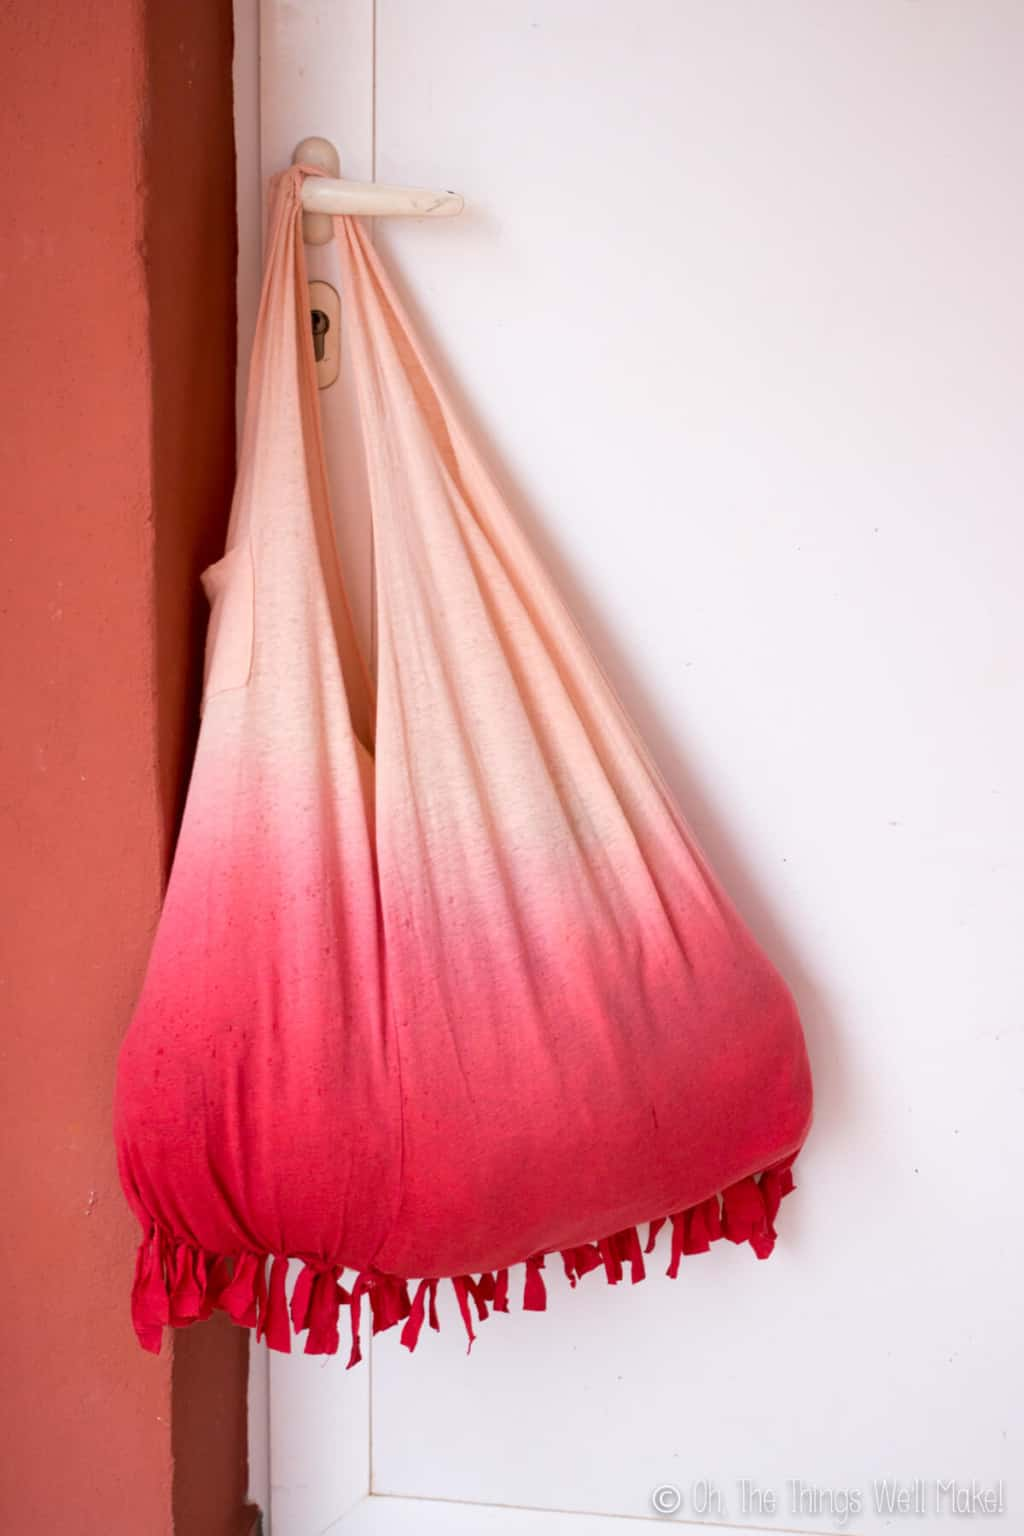 An ombre peach red no sew fringed bottom t-shirt bag hanging on a door knob of a white door.